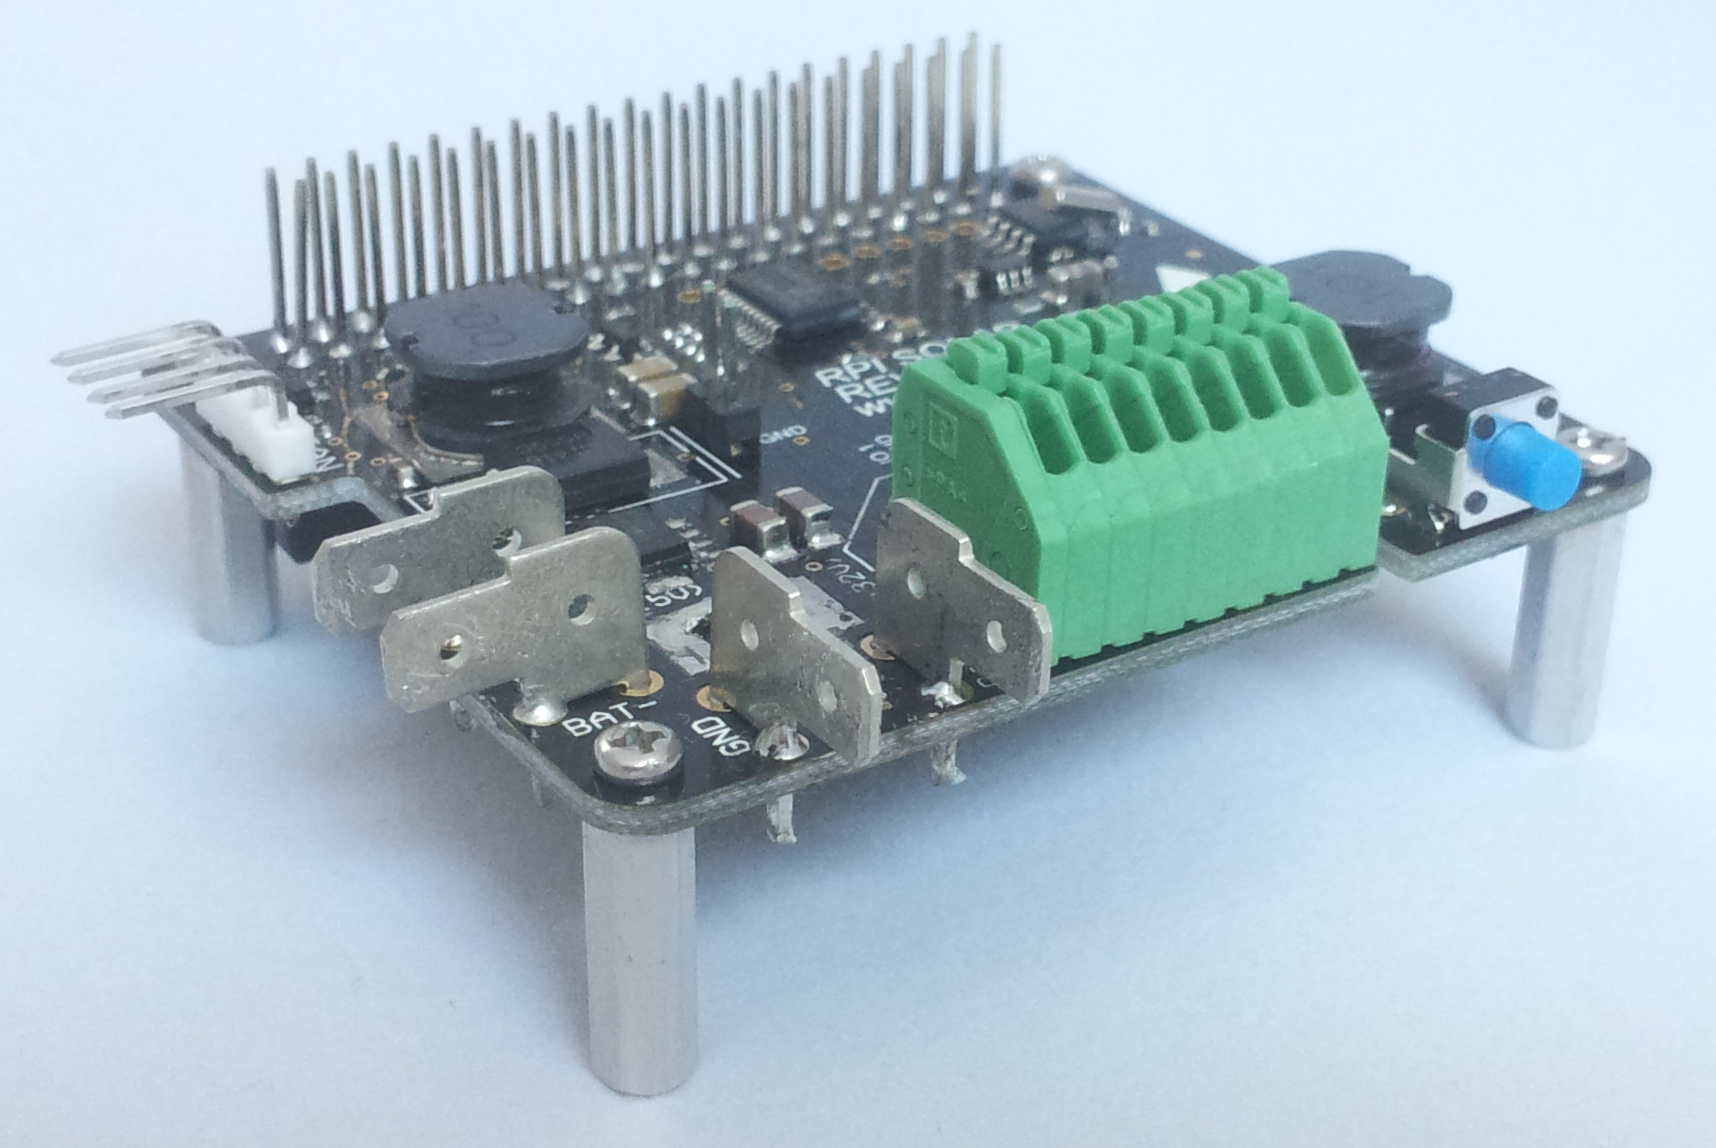 hight resolution of  deployments including a solar panel interface battery backup and charging analog to digital inputs a pwm fan controller and a real time clock for